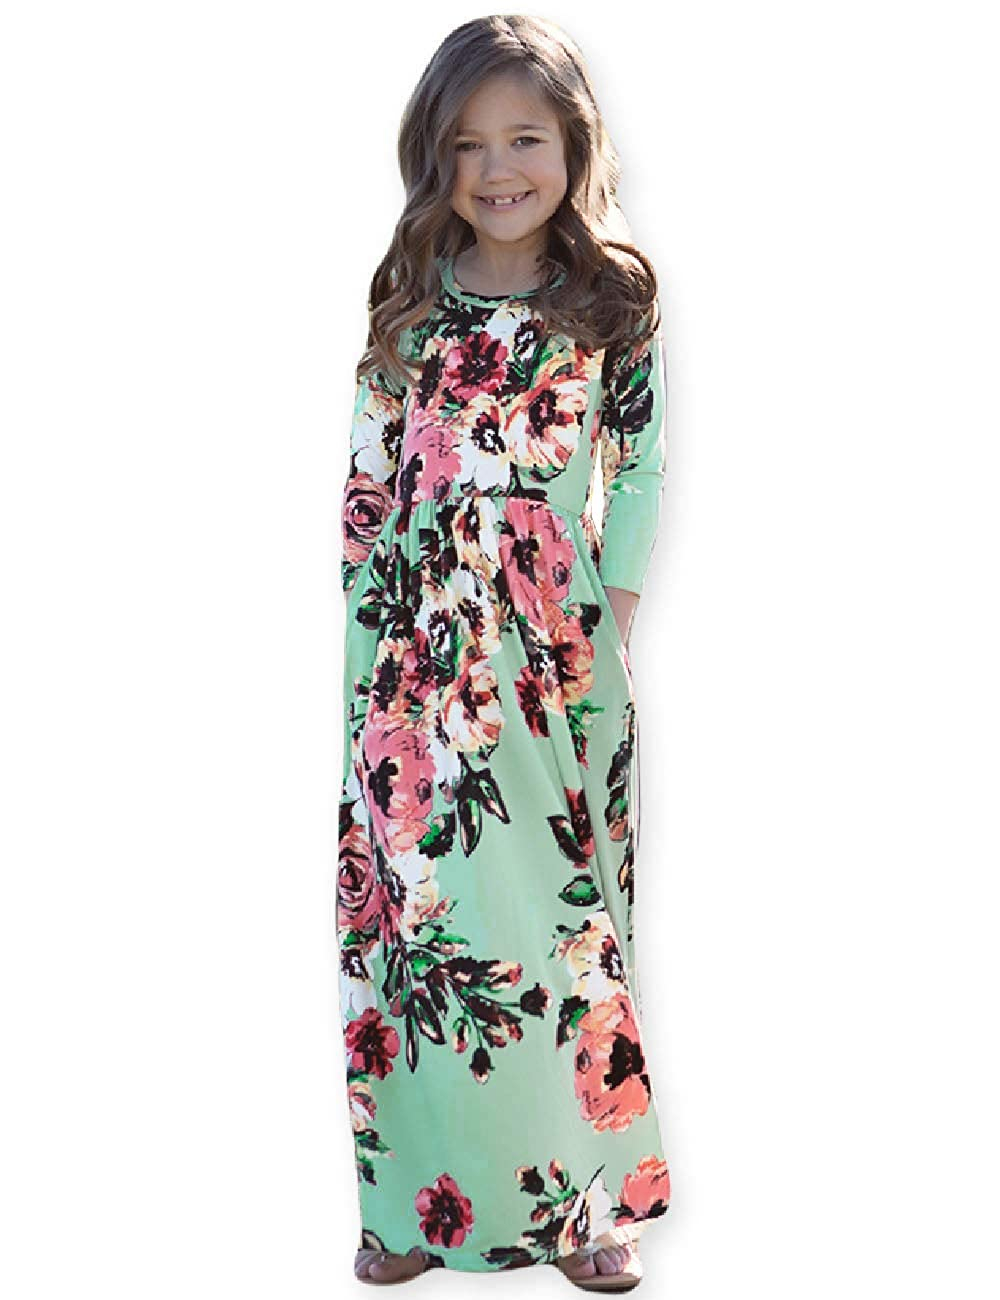 b22f47241d6c Amazon.com: Girls Maxi Dress, Kids Floral Casual T-Shirt 3/4 Sleeve Dresses  with Pocket for Girls 6-12T: Clothing